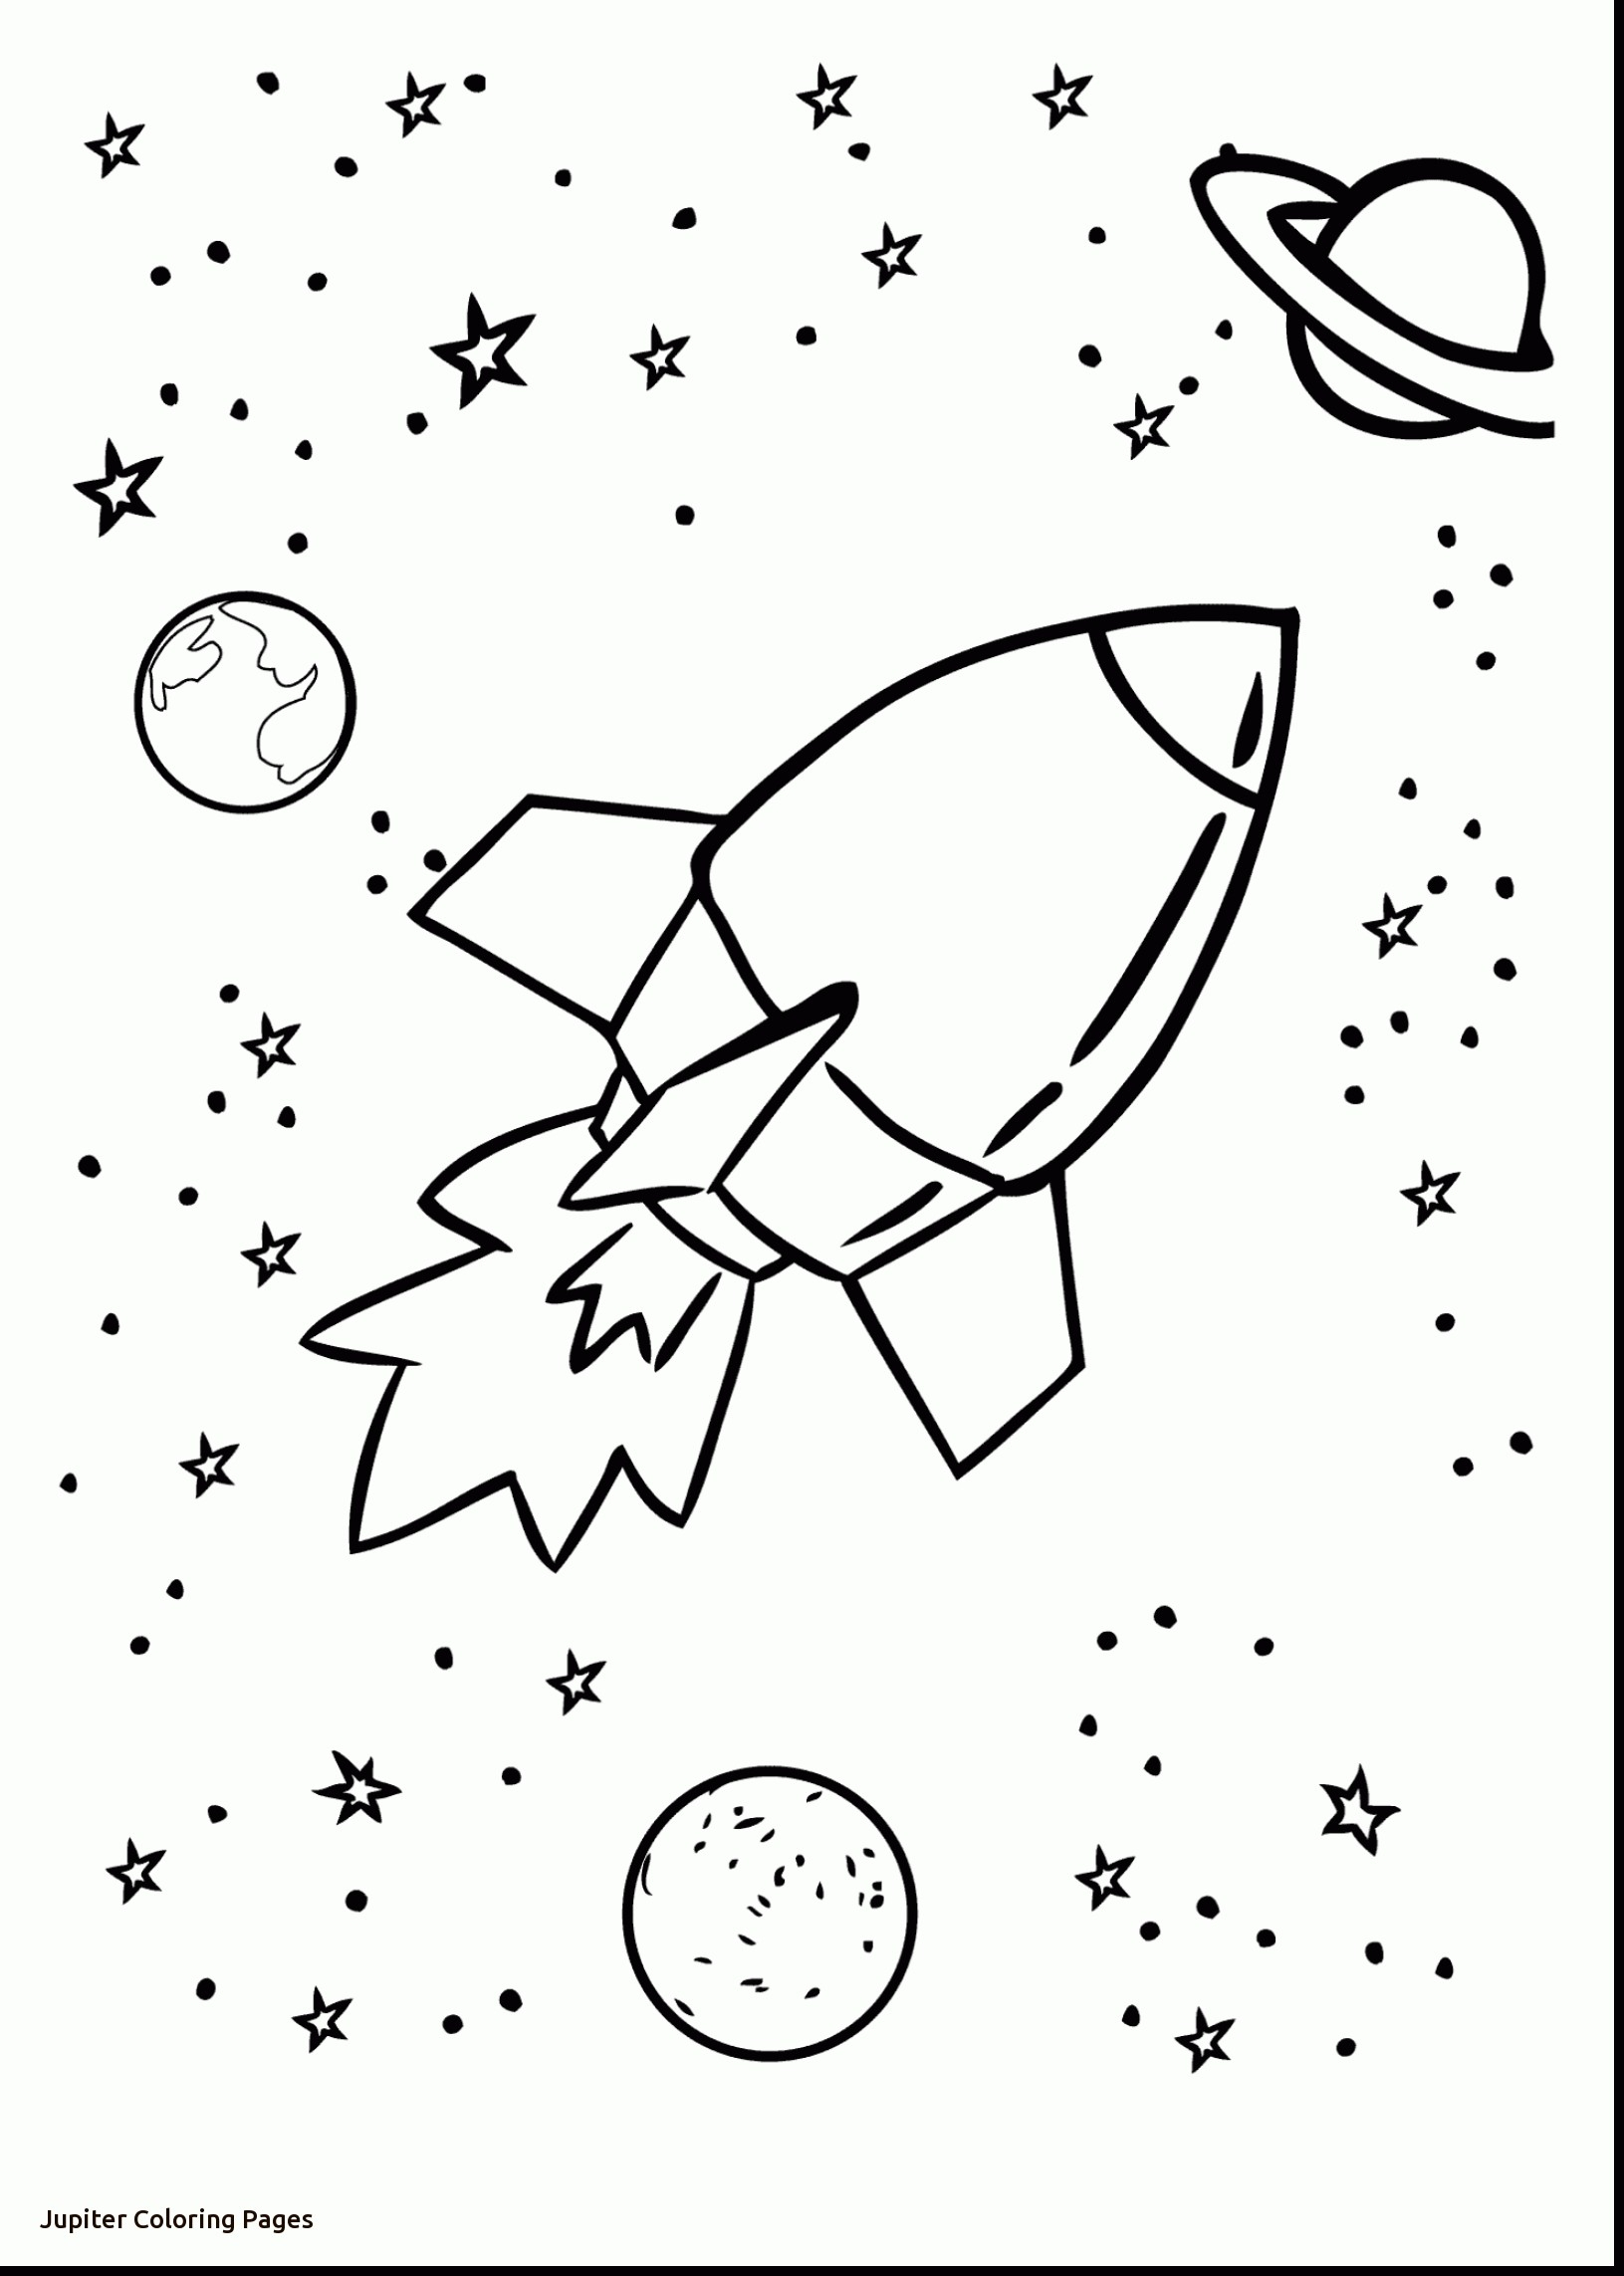 Mercury Planet Coloring Page At Getdrawings